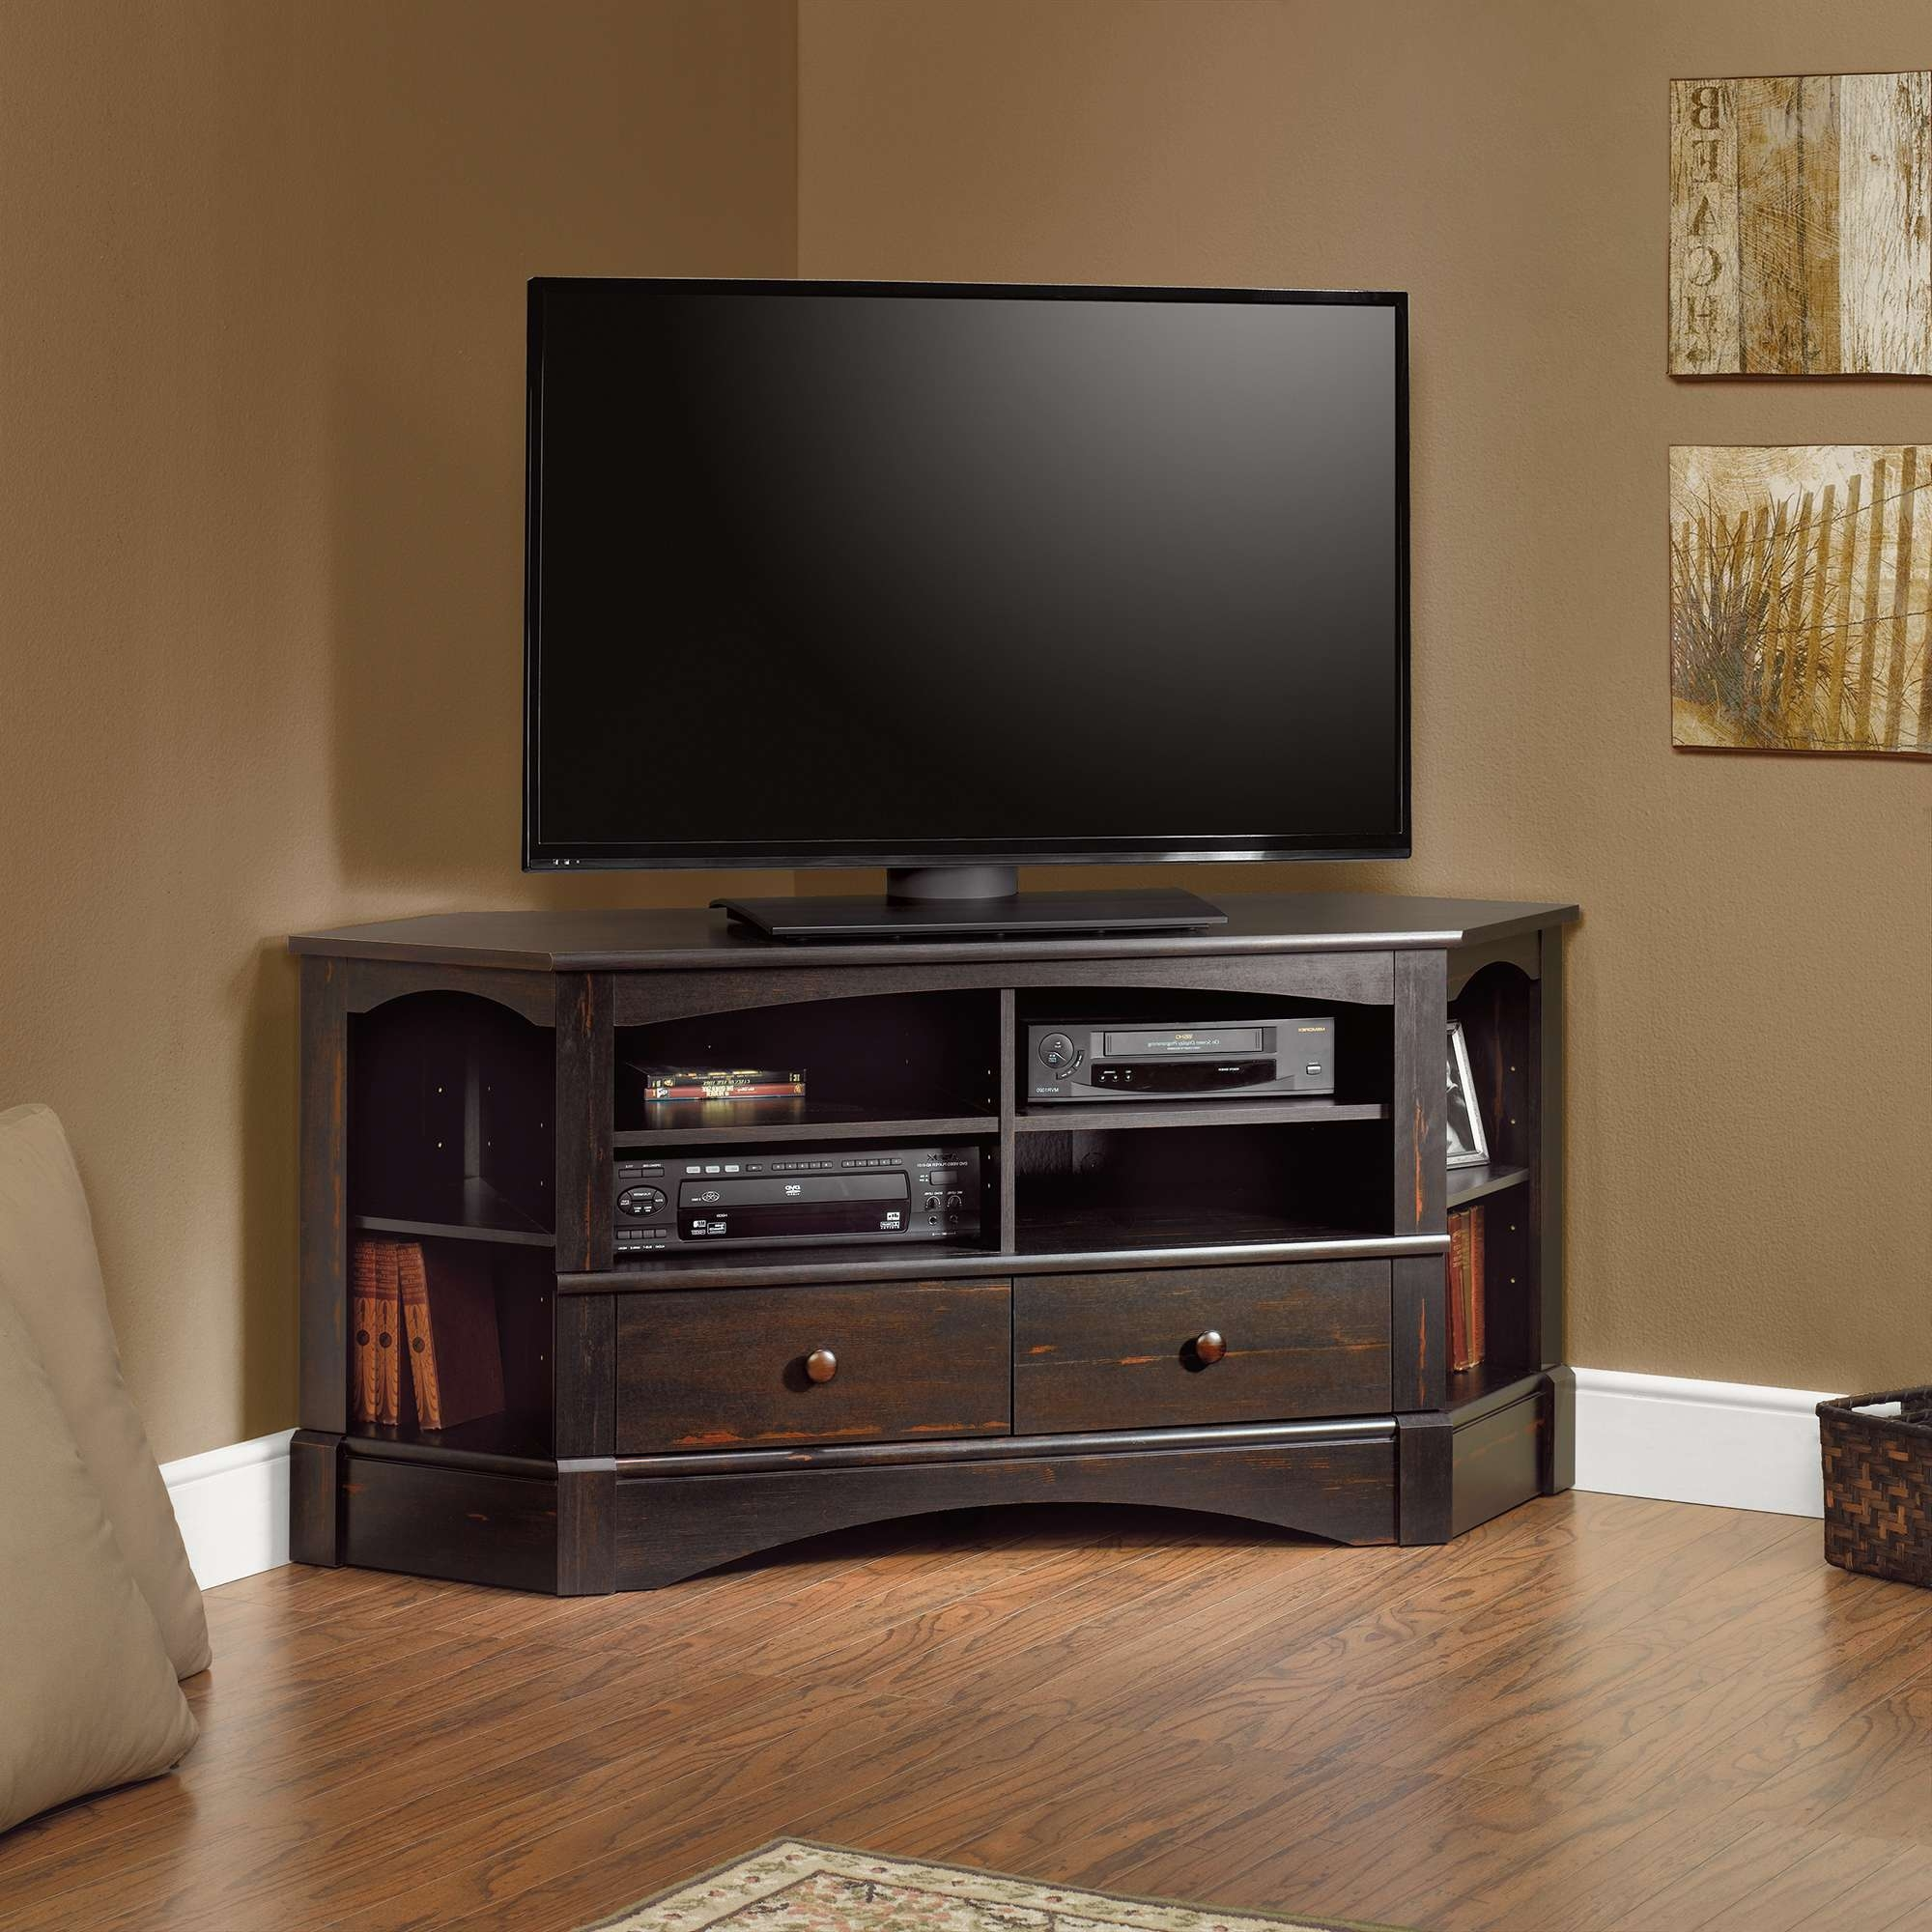 Tv Stand : Imposing Led Tv Standture Image Inspirations Dark Brown With Regard To Wooden Corner Tv Stands (View 4 of 20)